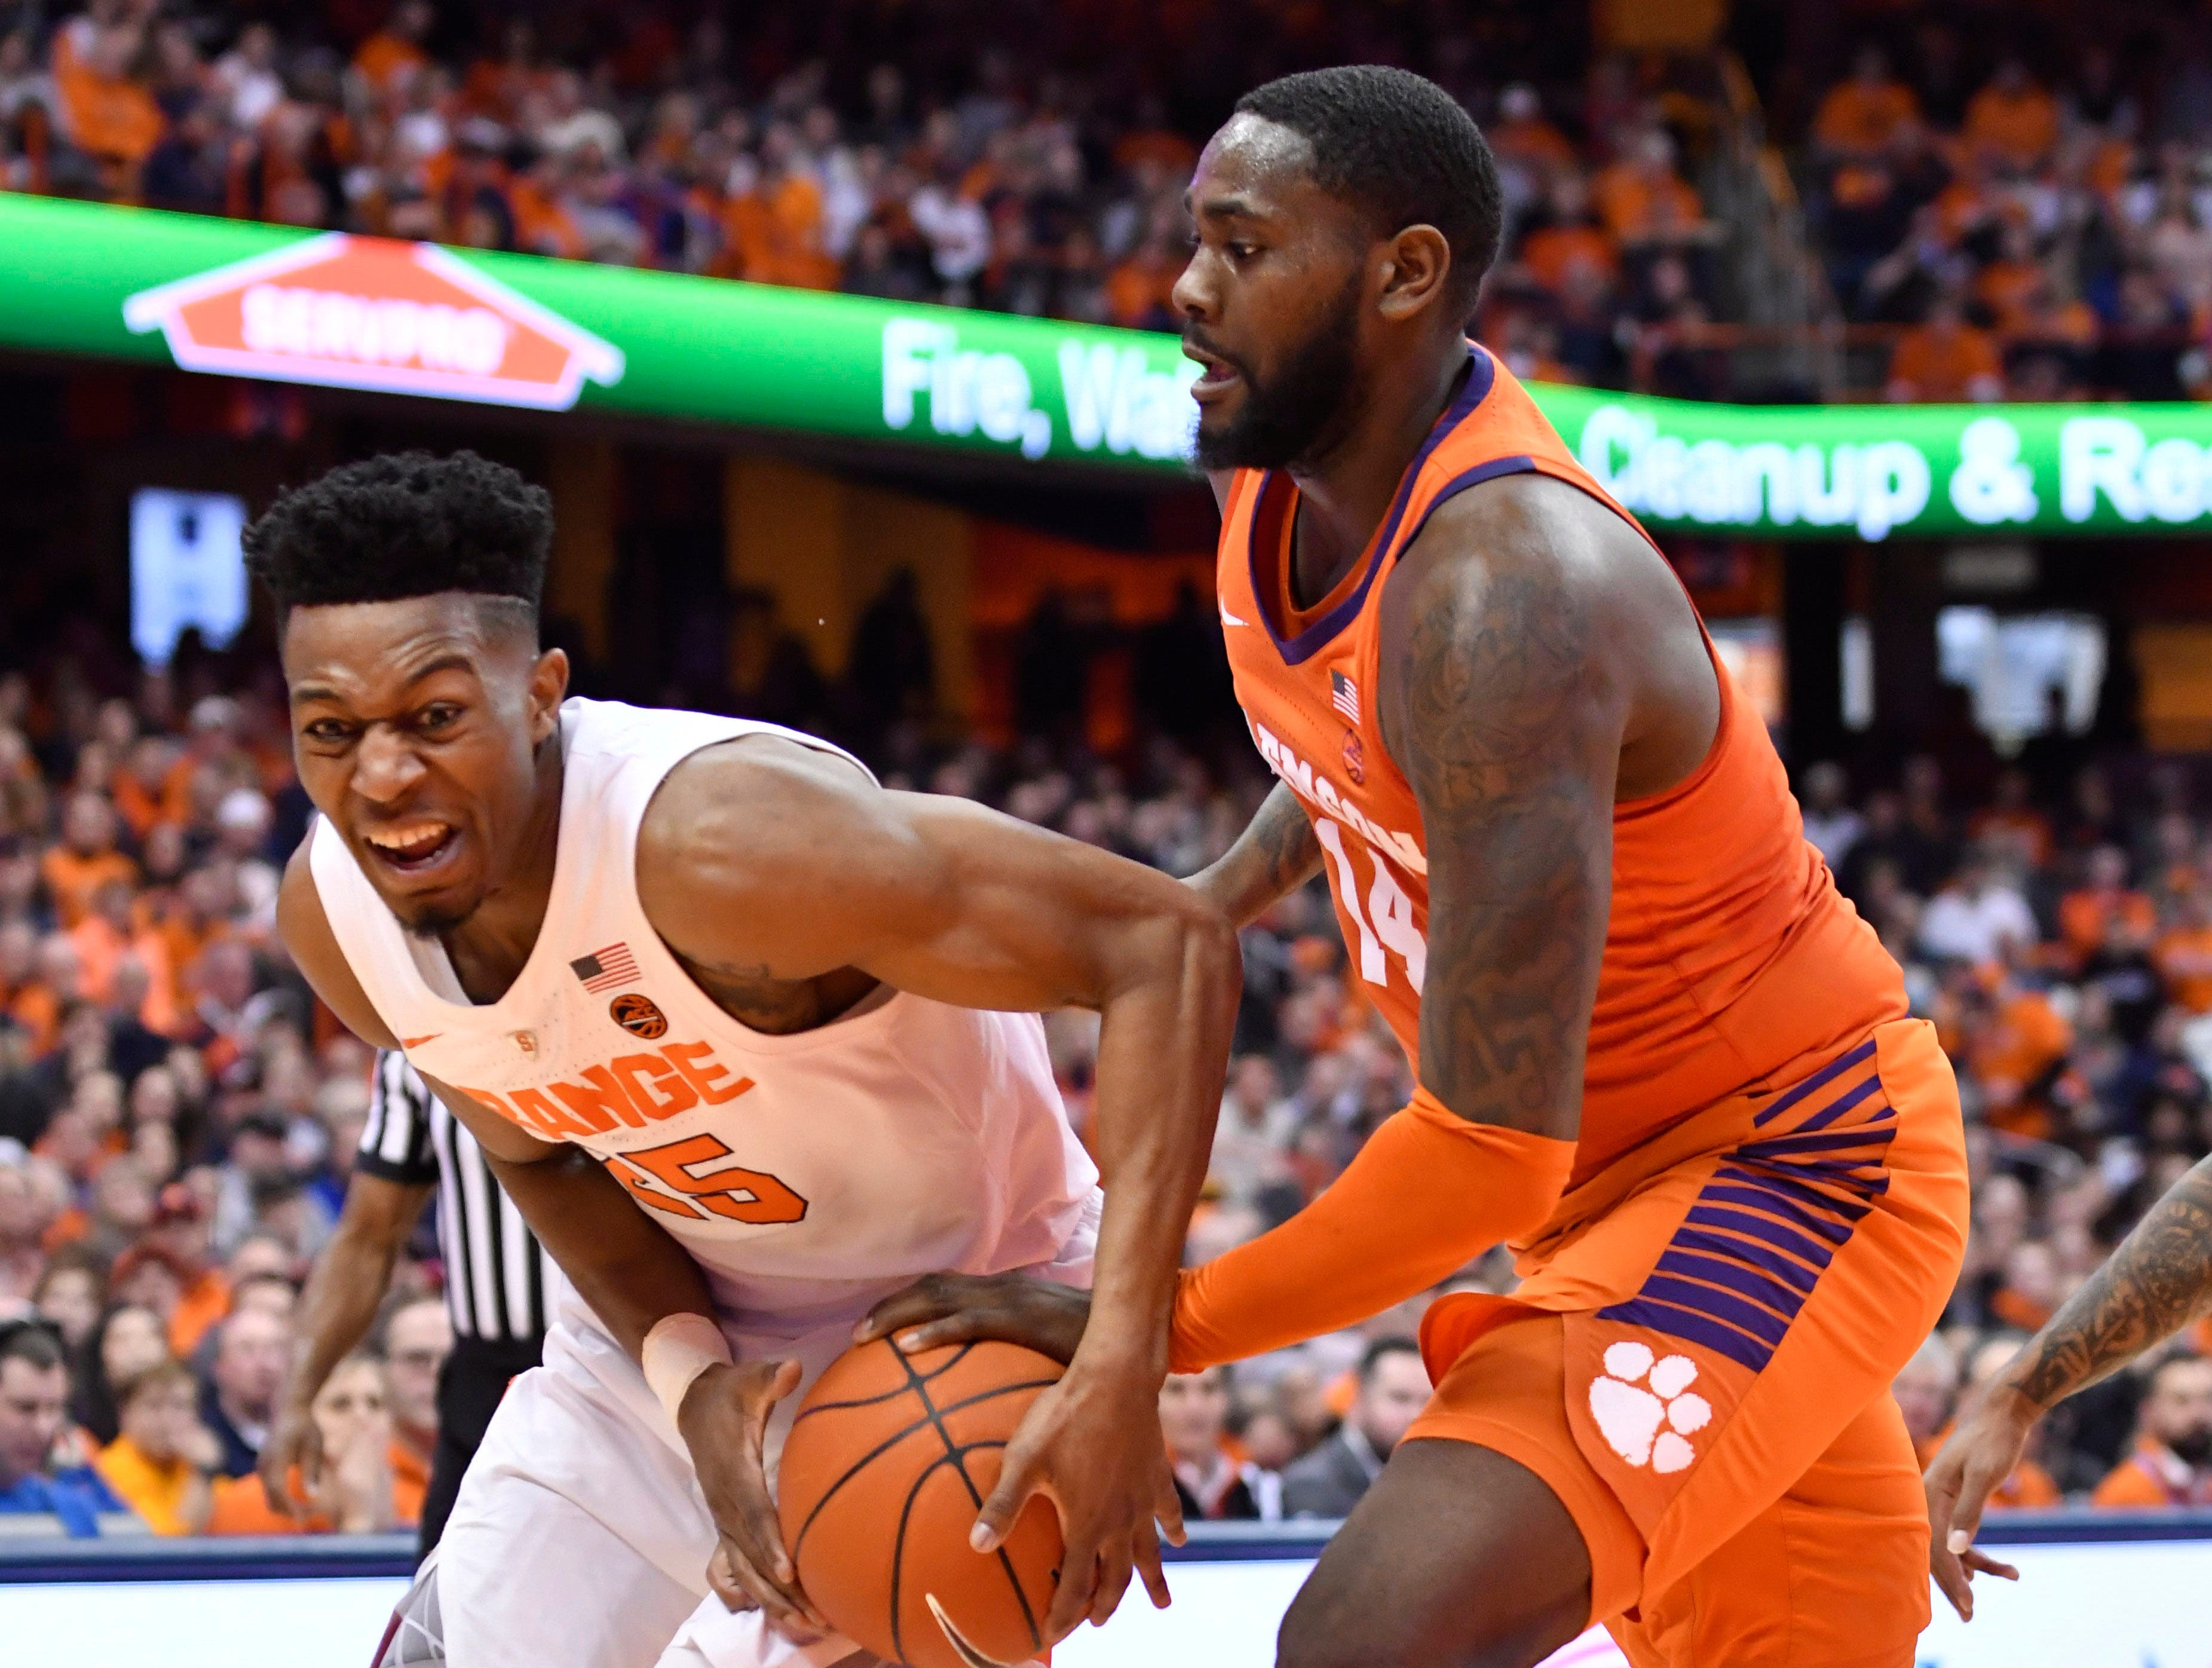 Jan 9, 2019; Syracuse, NY, USA; Syracuse Orange guard Tyus Battle (25) works to hold onto the ball against Clemson Tigers forward Elijah Thomas (14) during the second half at the Carrier Dome.